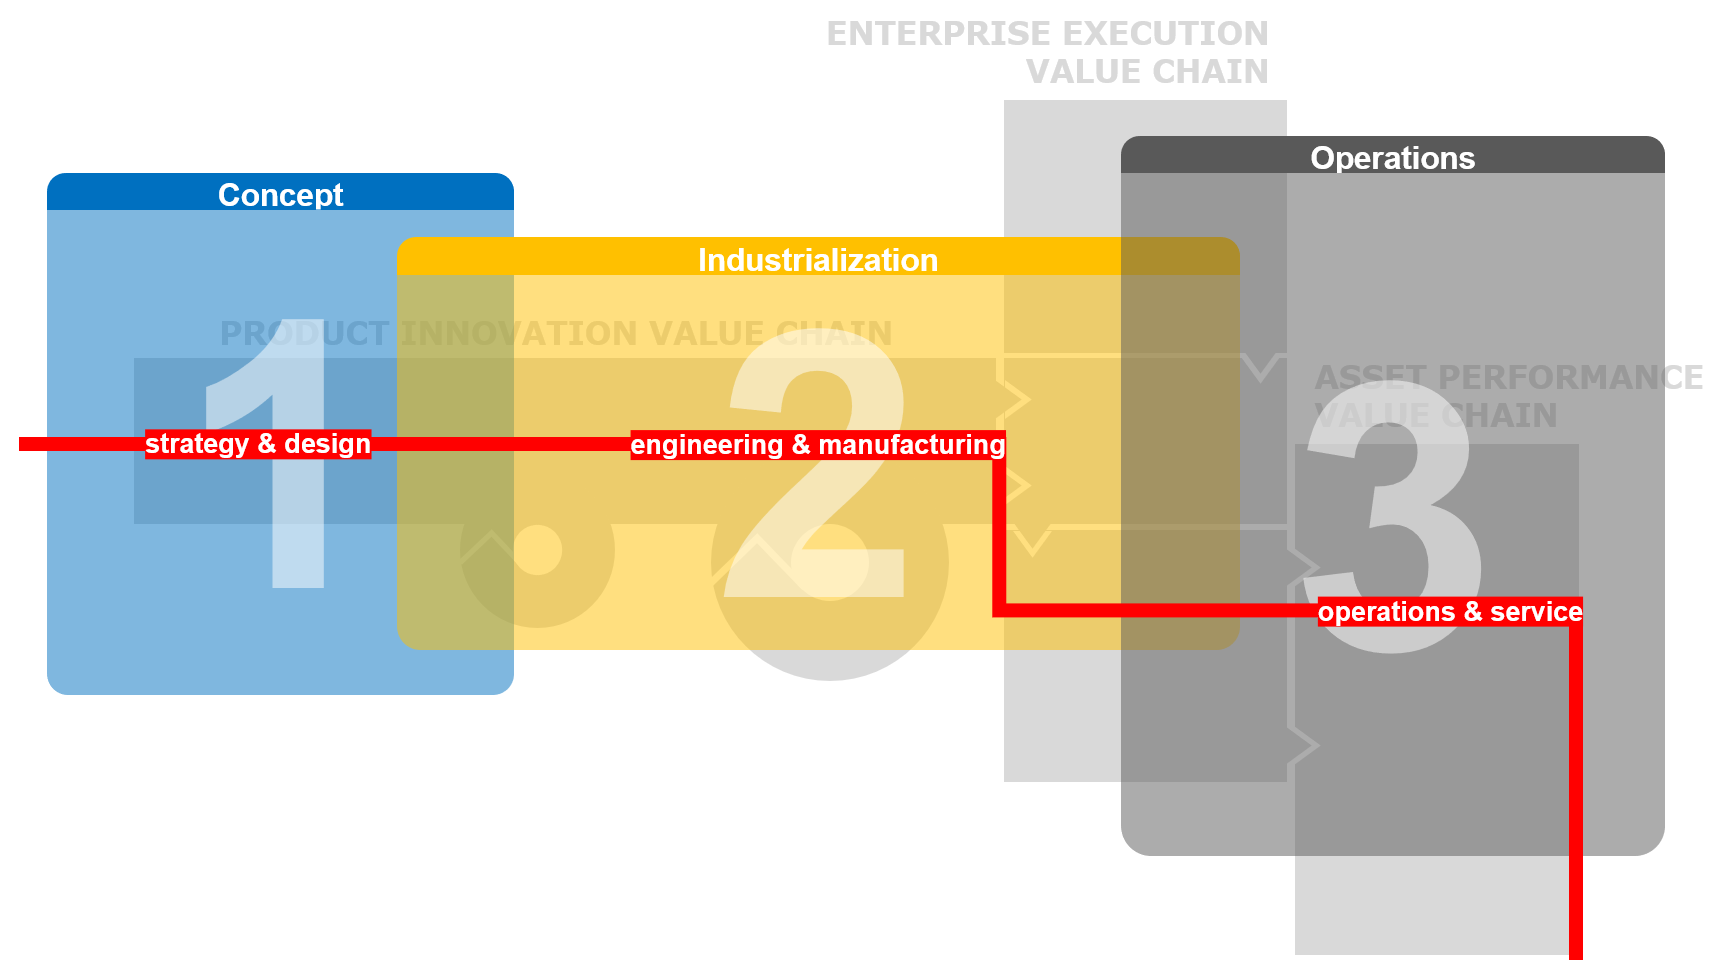 Digital thread across the enterprise value chains